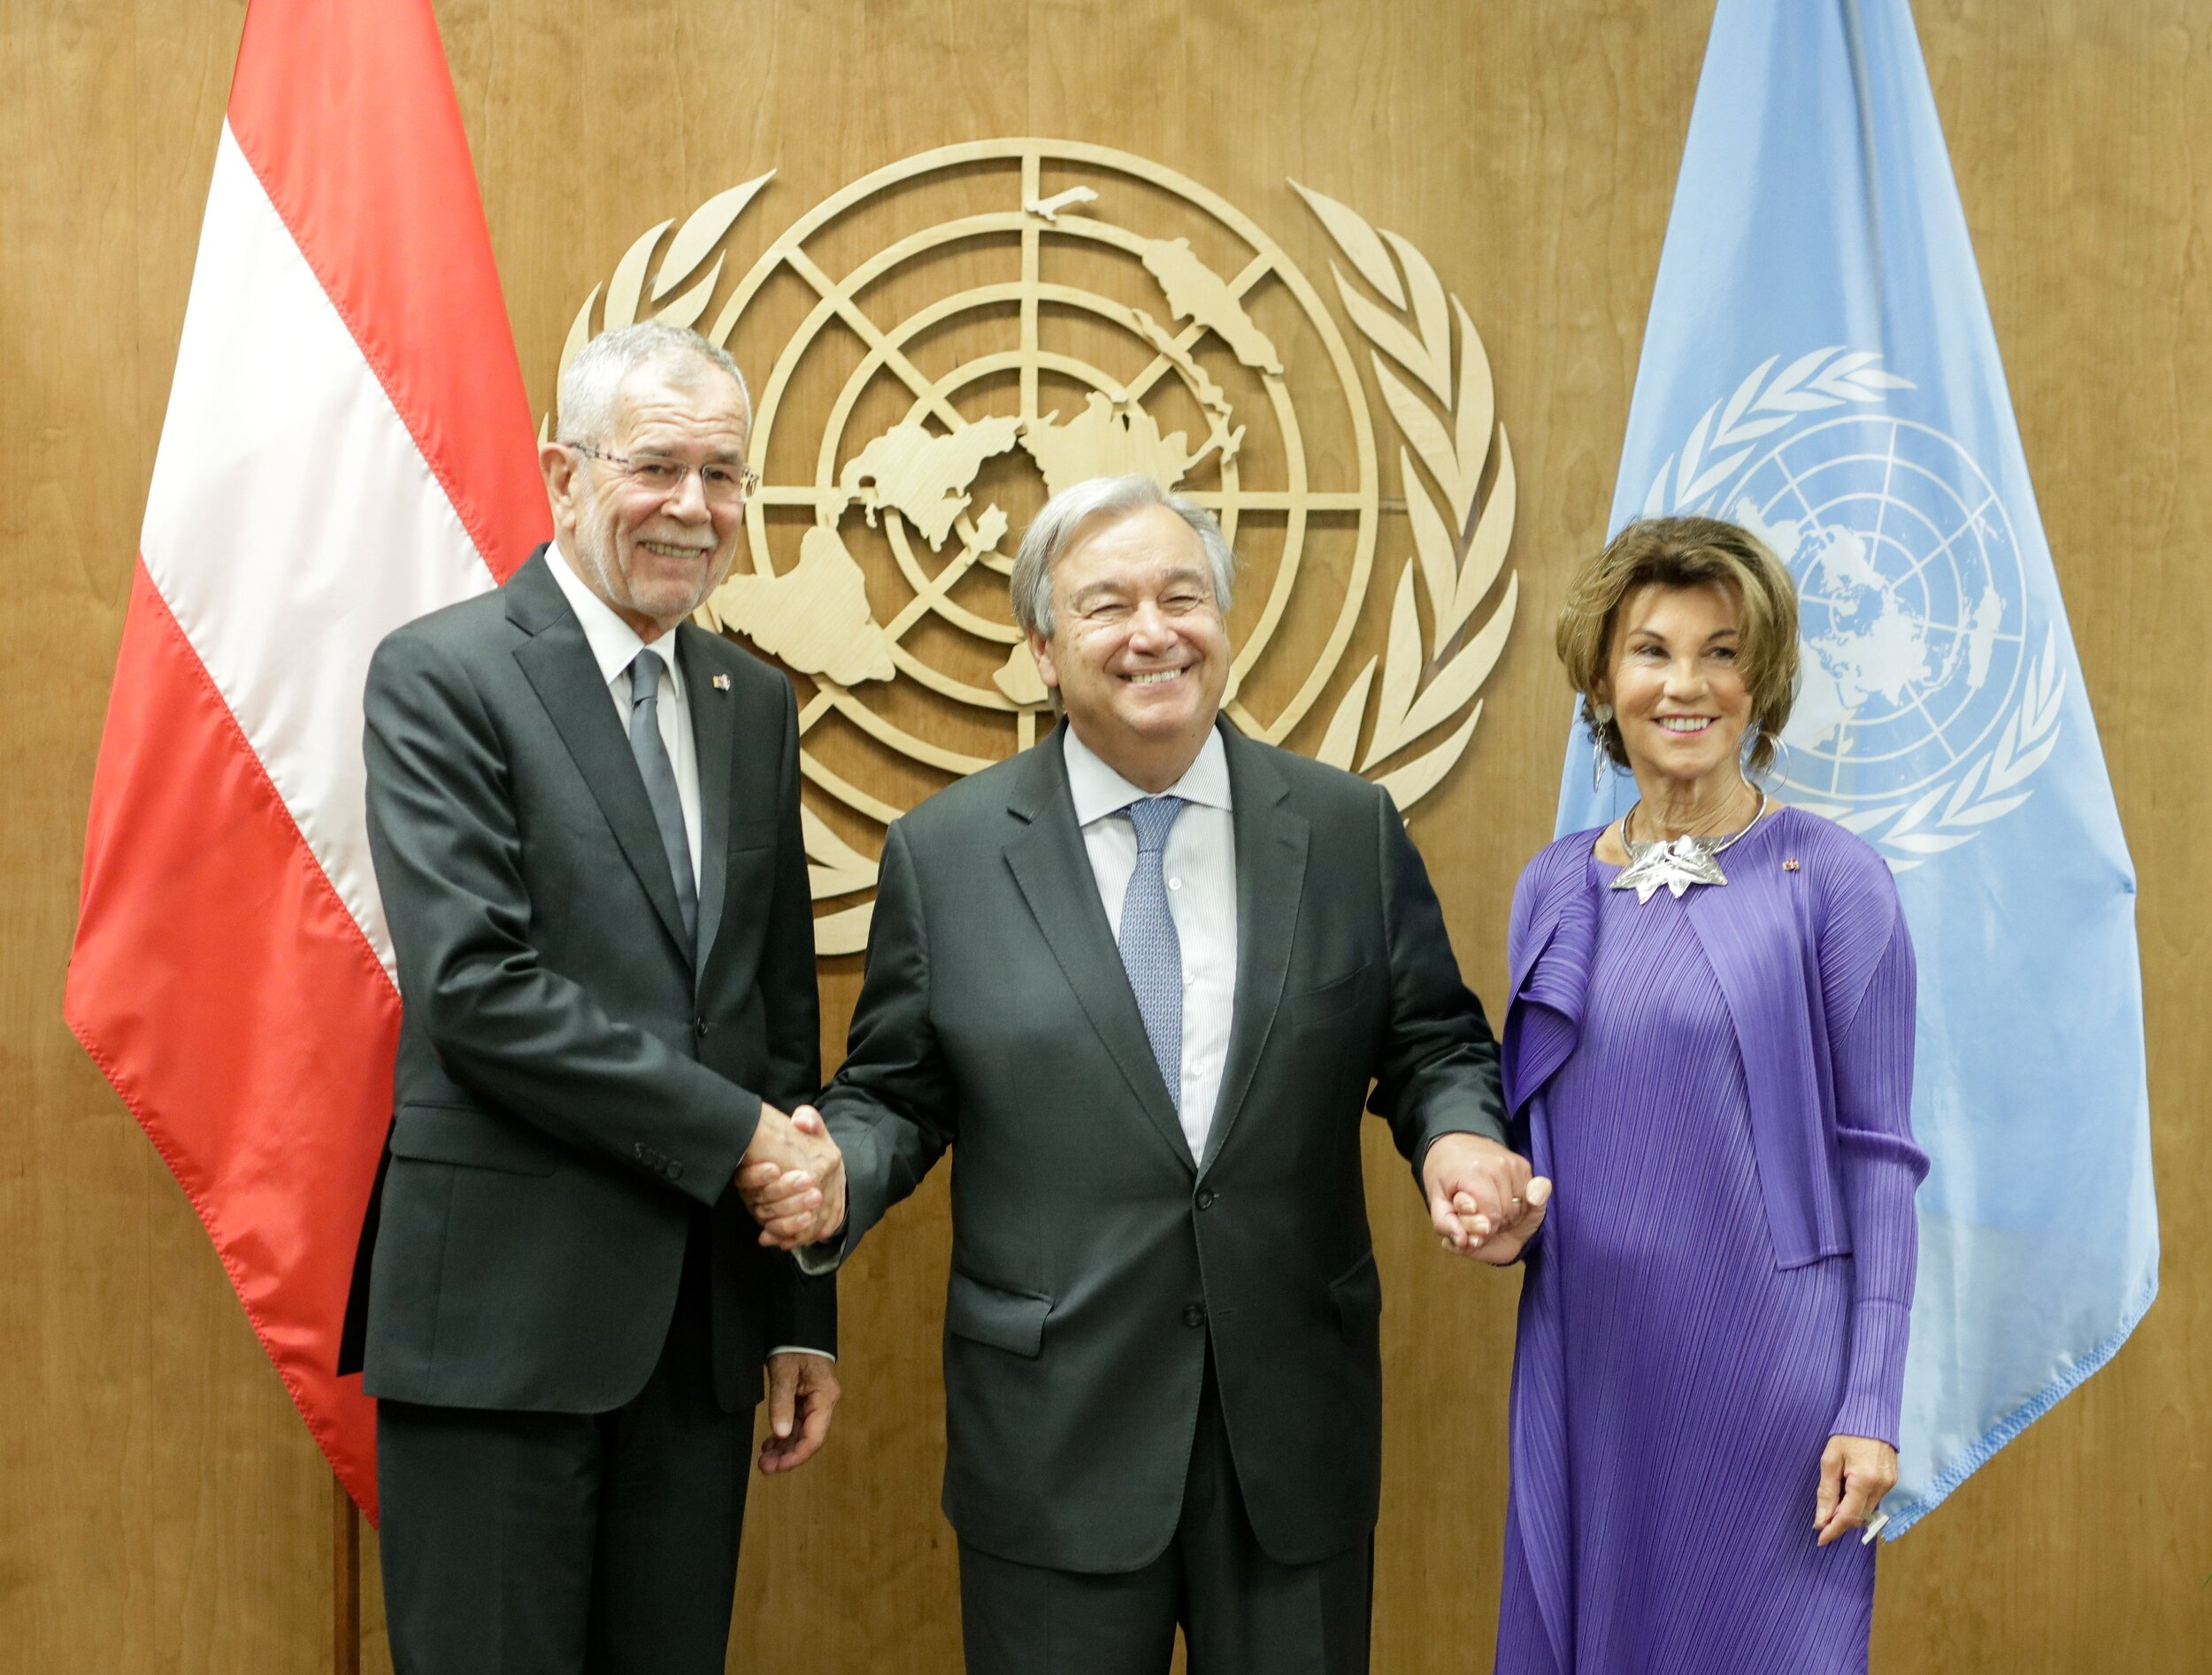 On September 22, 2019, Federal President Alexander Van der Bellen (left) and Federal Chancellor Brigitte Bierlein (right) meet with UN Secretary General António Guterres (center) in New York City on the occasion of the 74th UN General Assembly.   Photo: Austrian Federal Chancellery/ Andy Wenzel